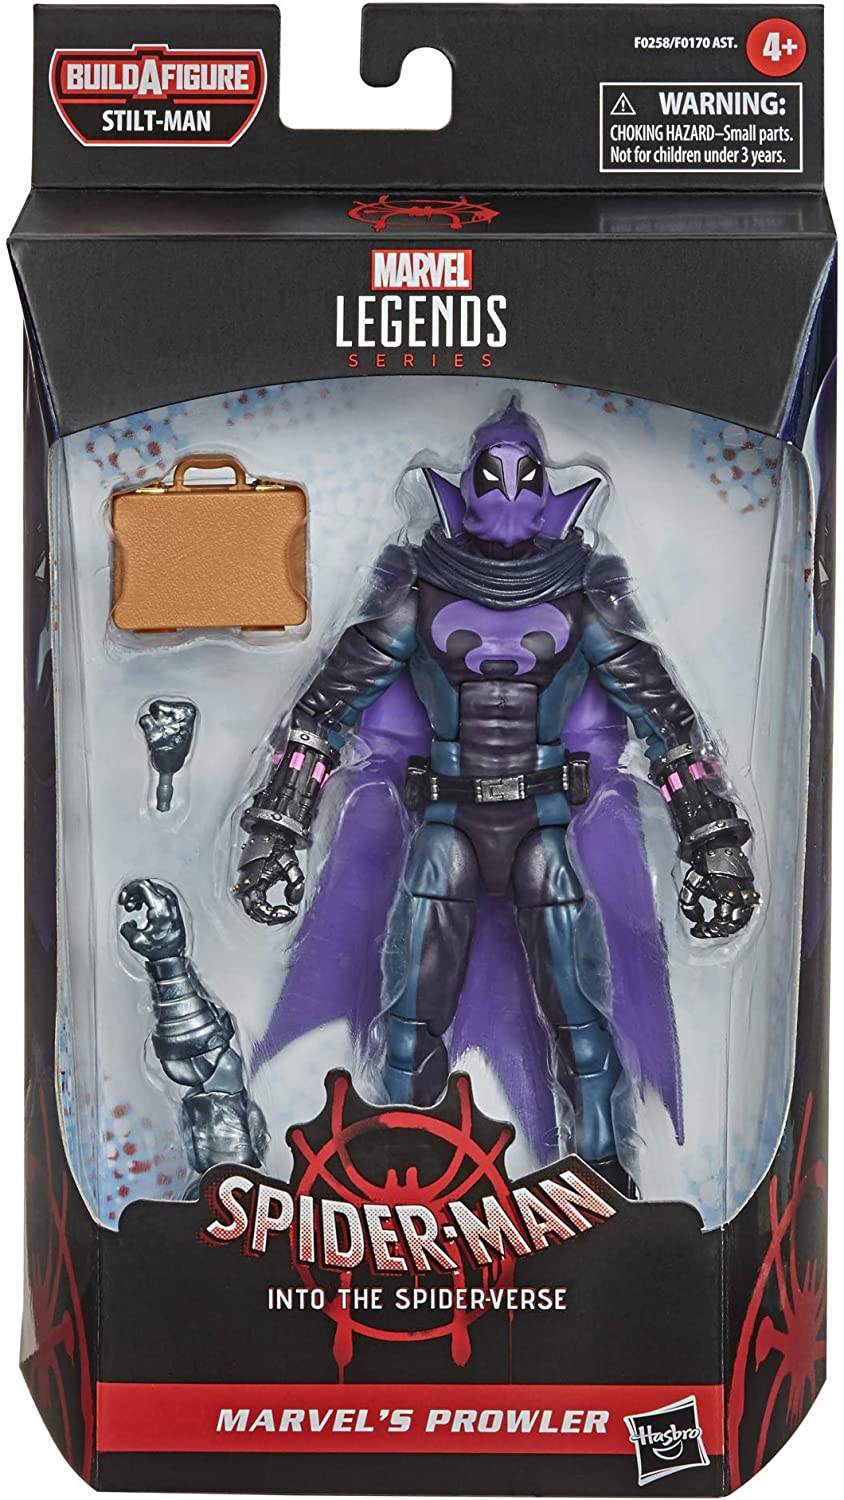 Hasbro Marvel Legends Series Spider-Man Into the Spider-Verse Marvel/'s Prowler 6-inch Collectible Action Figure Toy For Kids Age 4 and Up